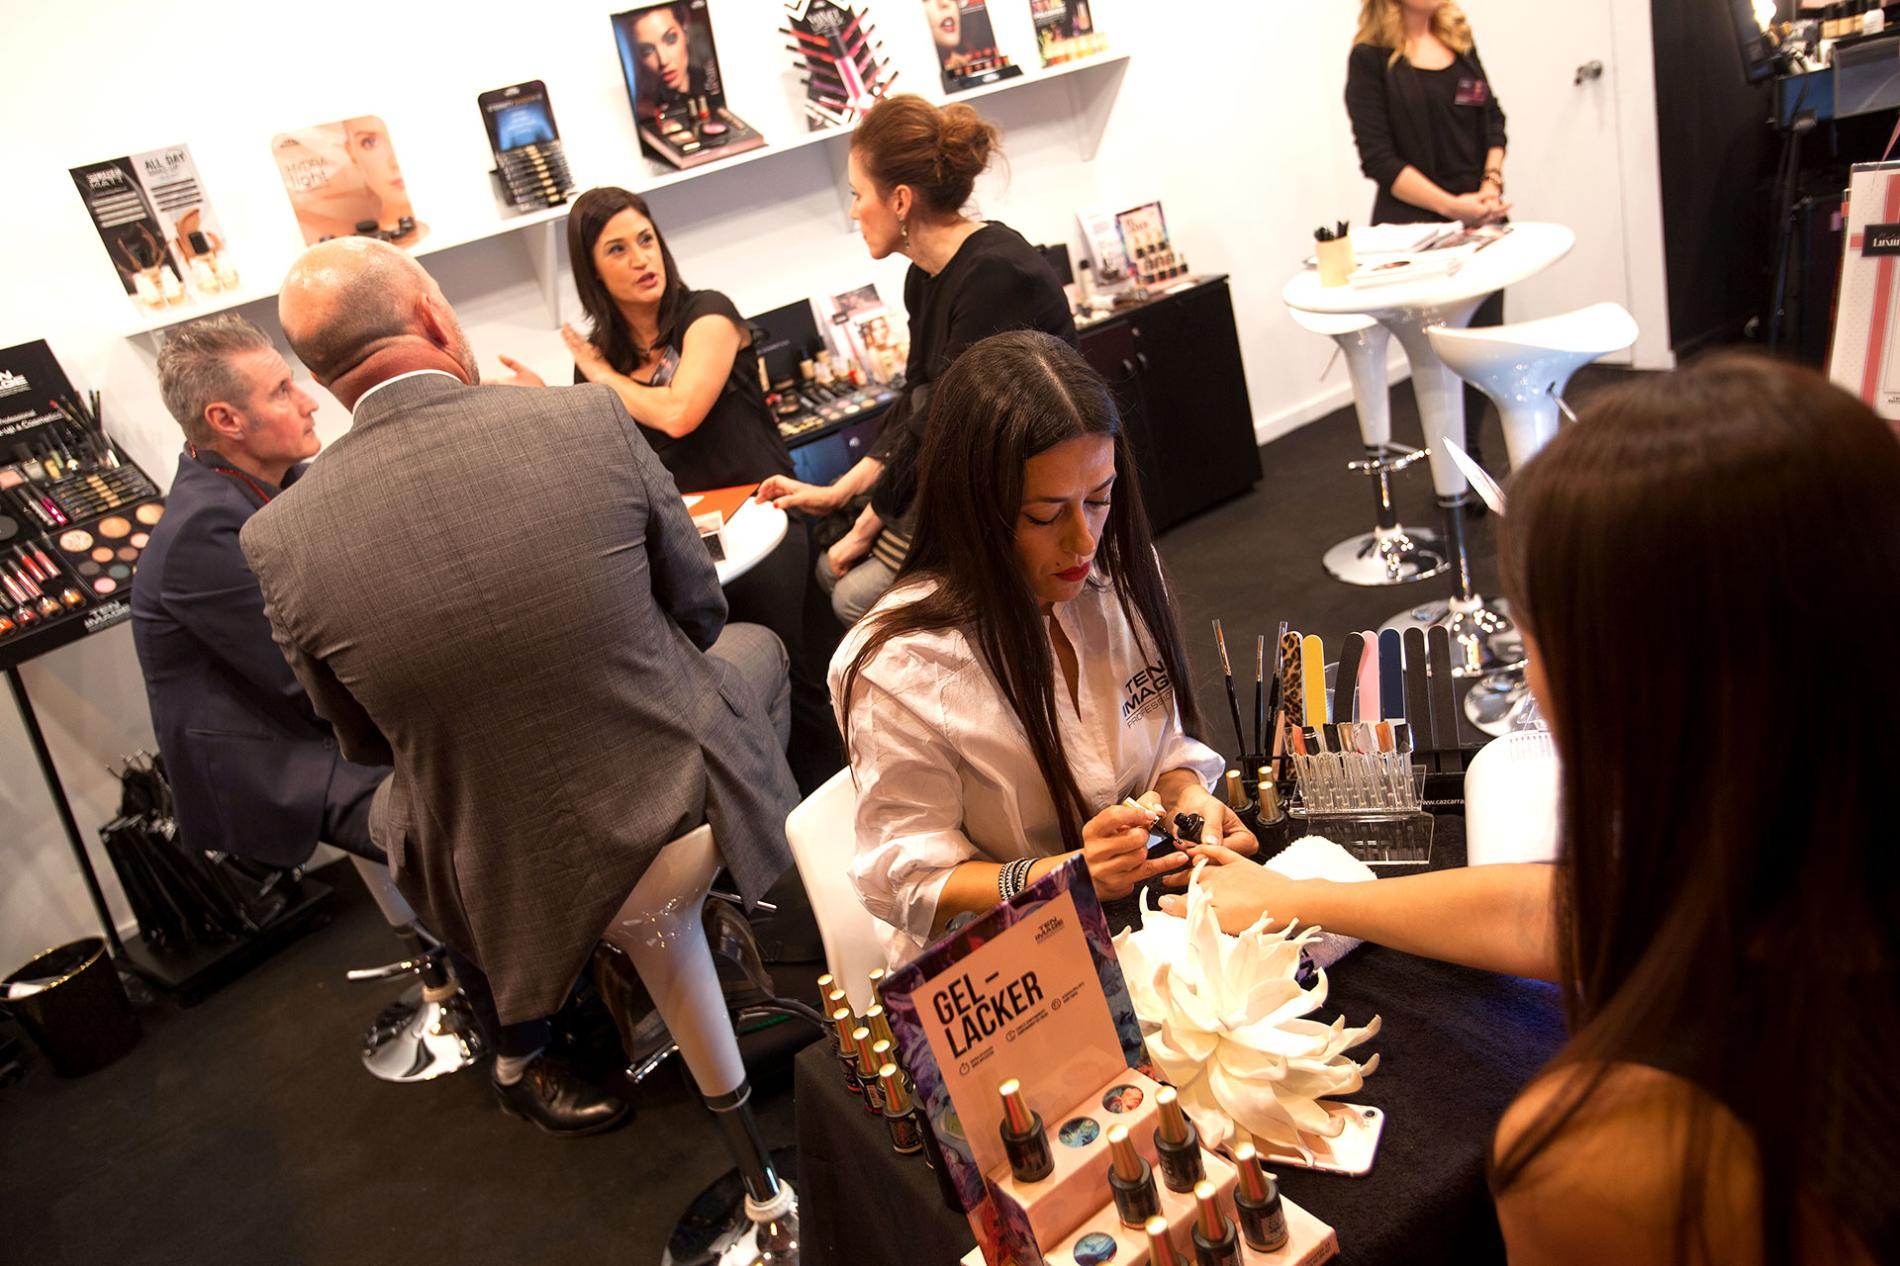 exhibitor painting nails to visitor